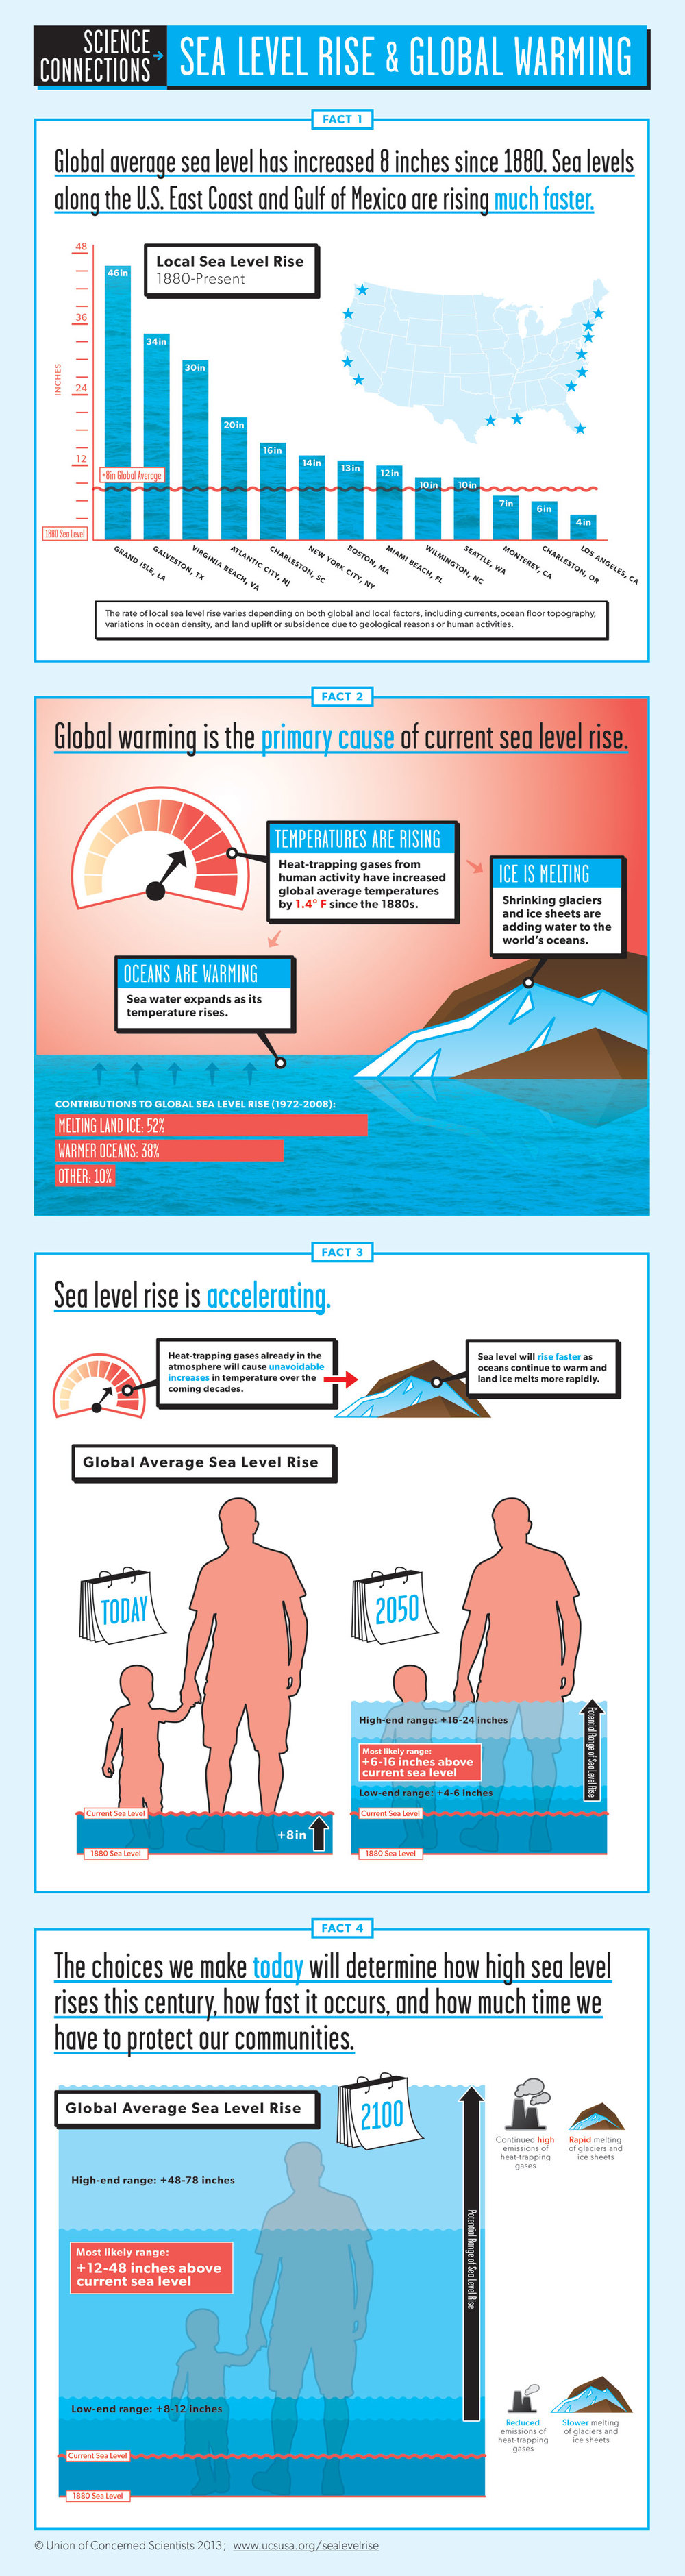 Sea-Level-Rise-and-Global-Warming-Infographic-All-Facts_Full-Size